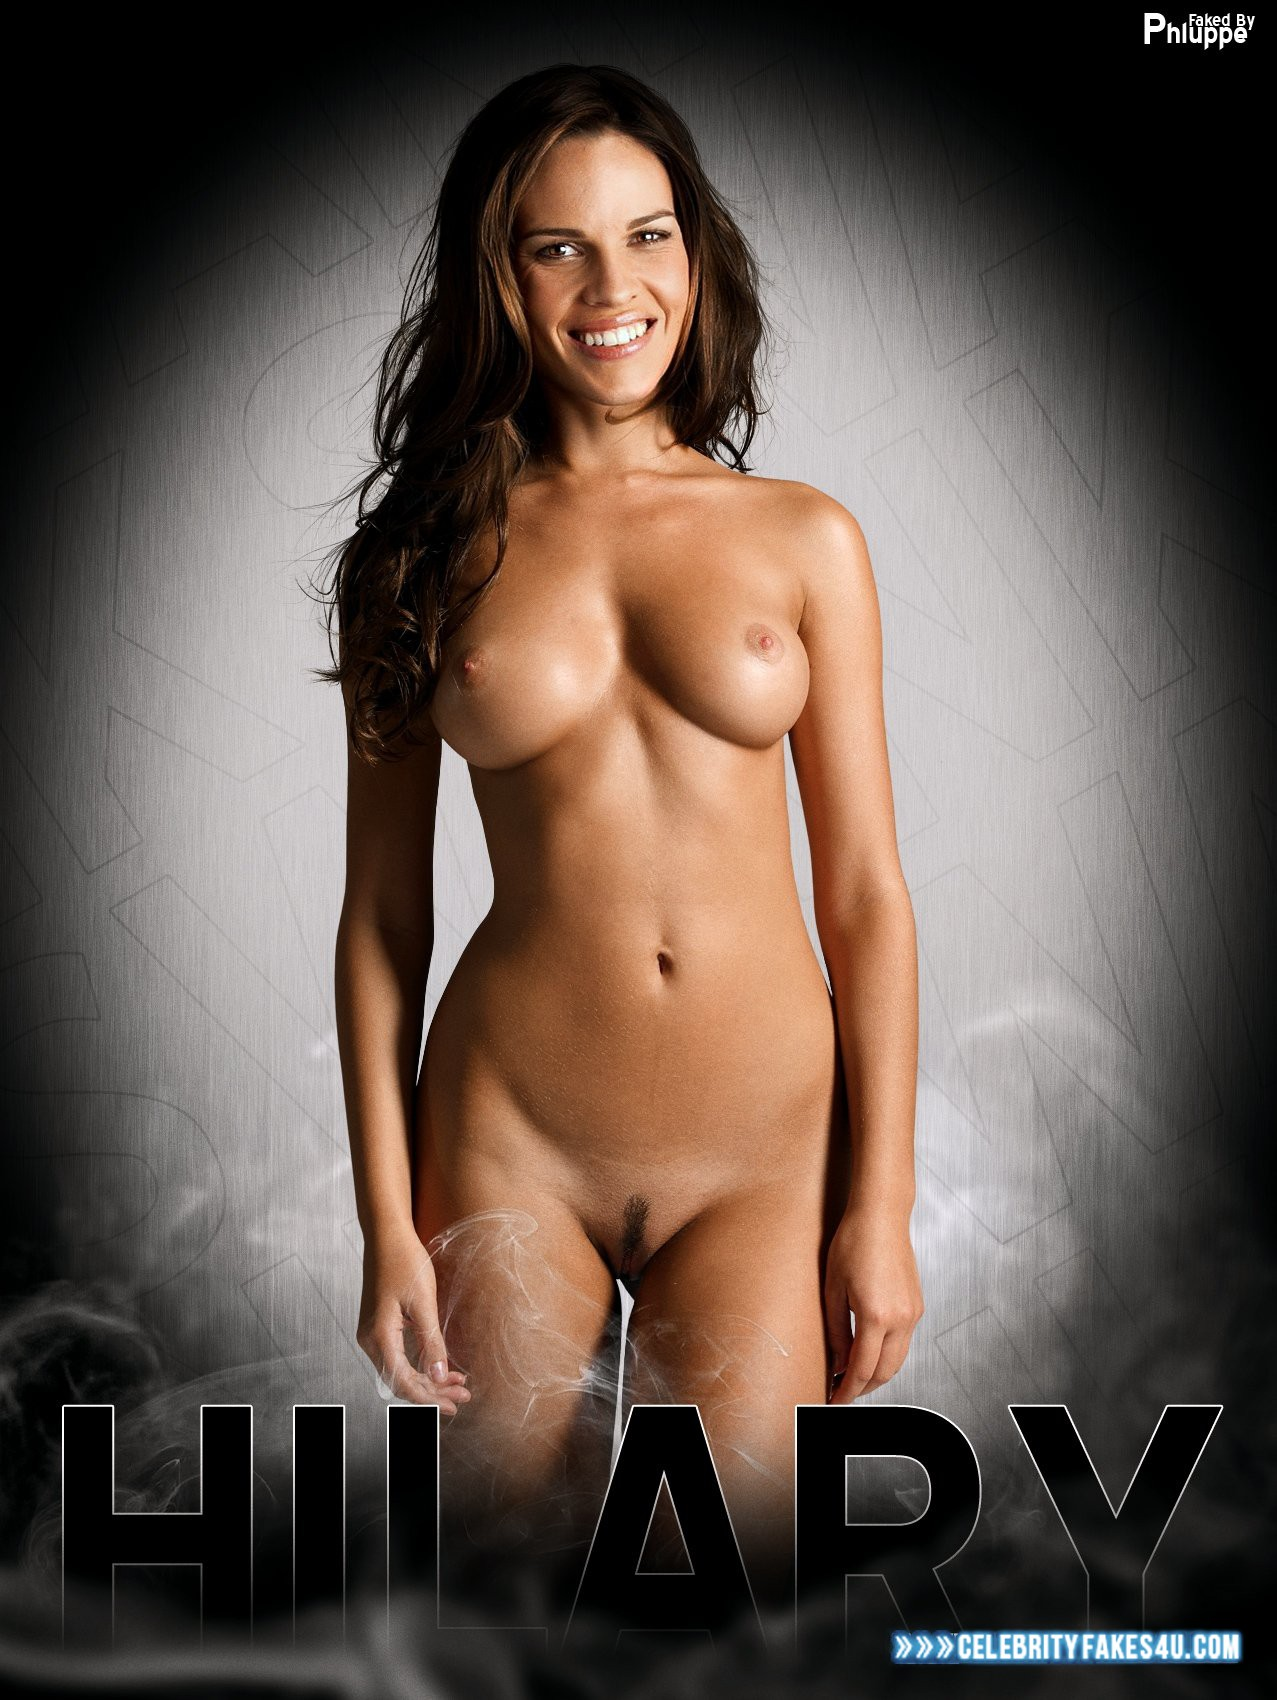 hilary-swank-hot-and-nude